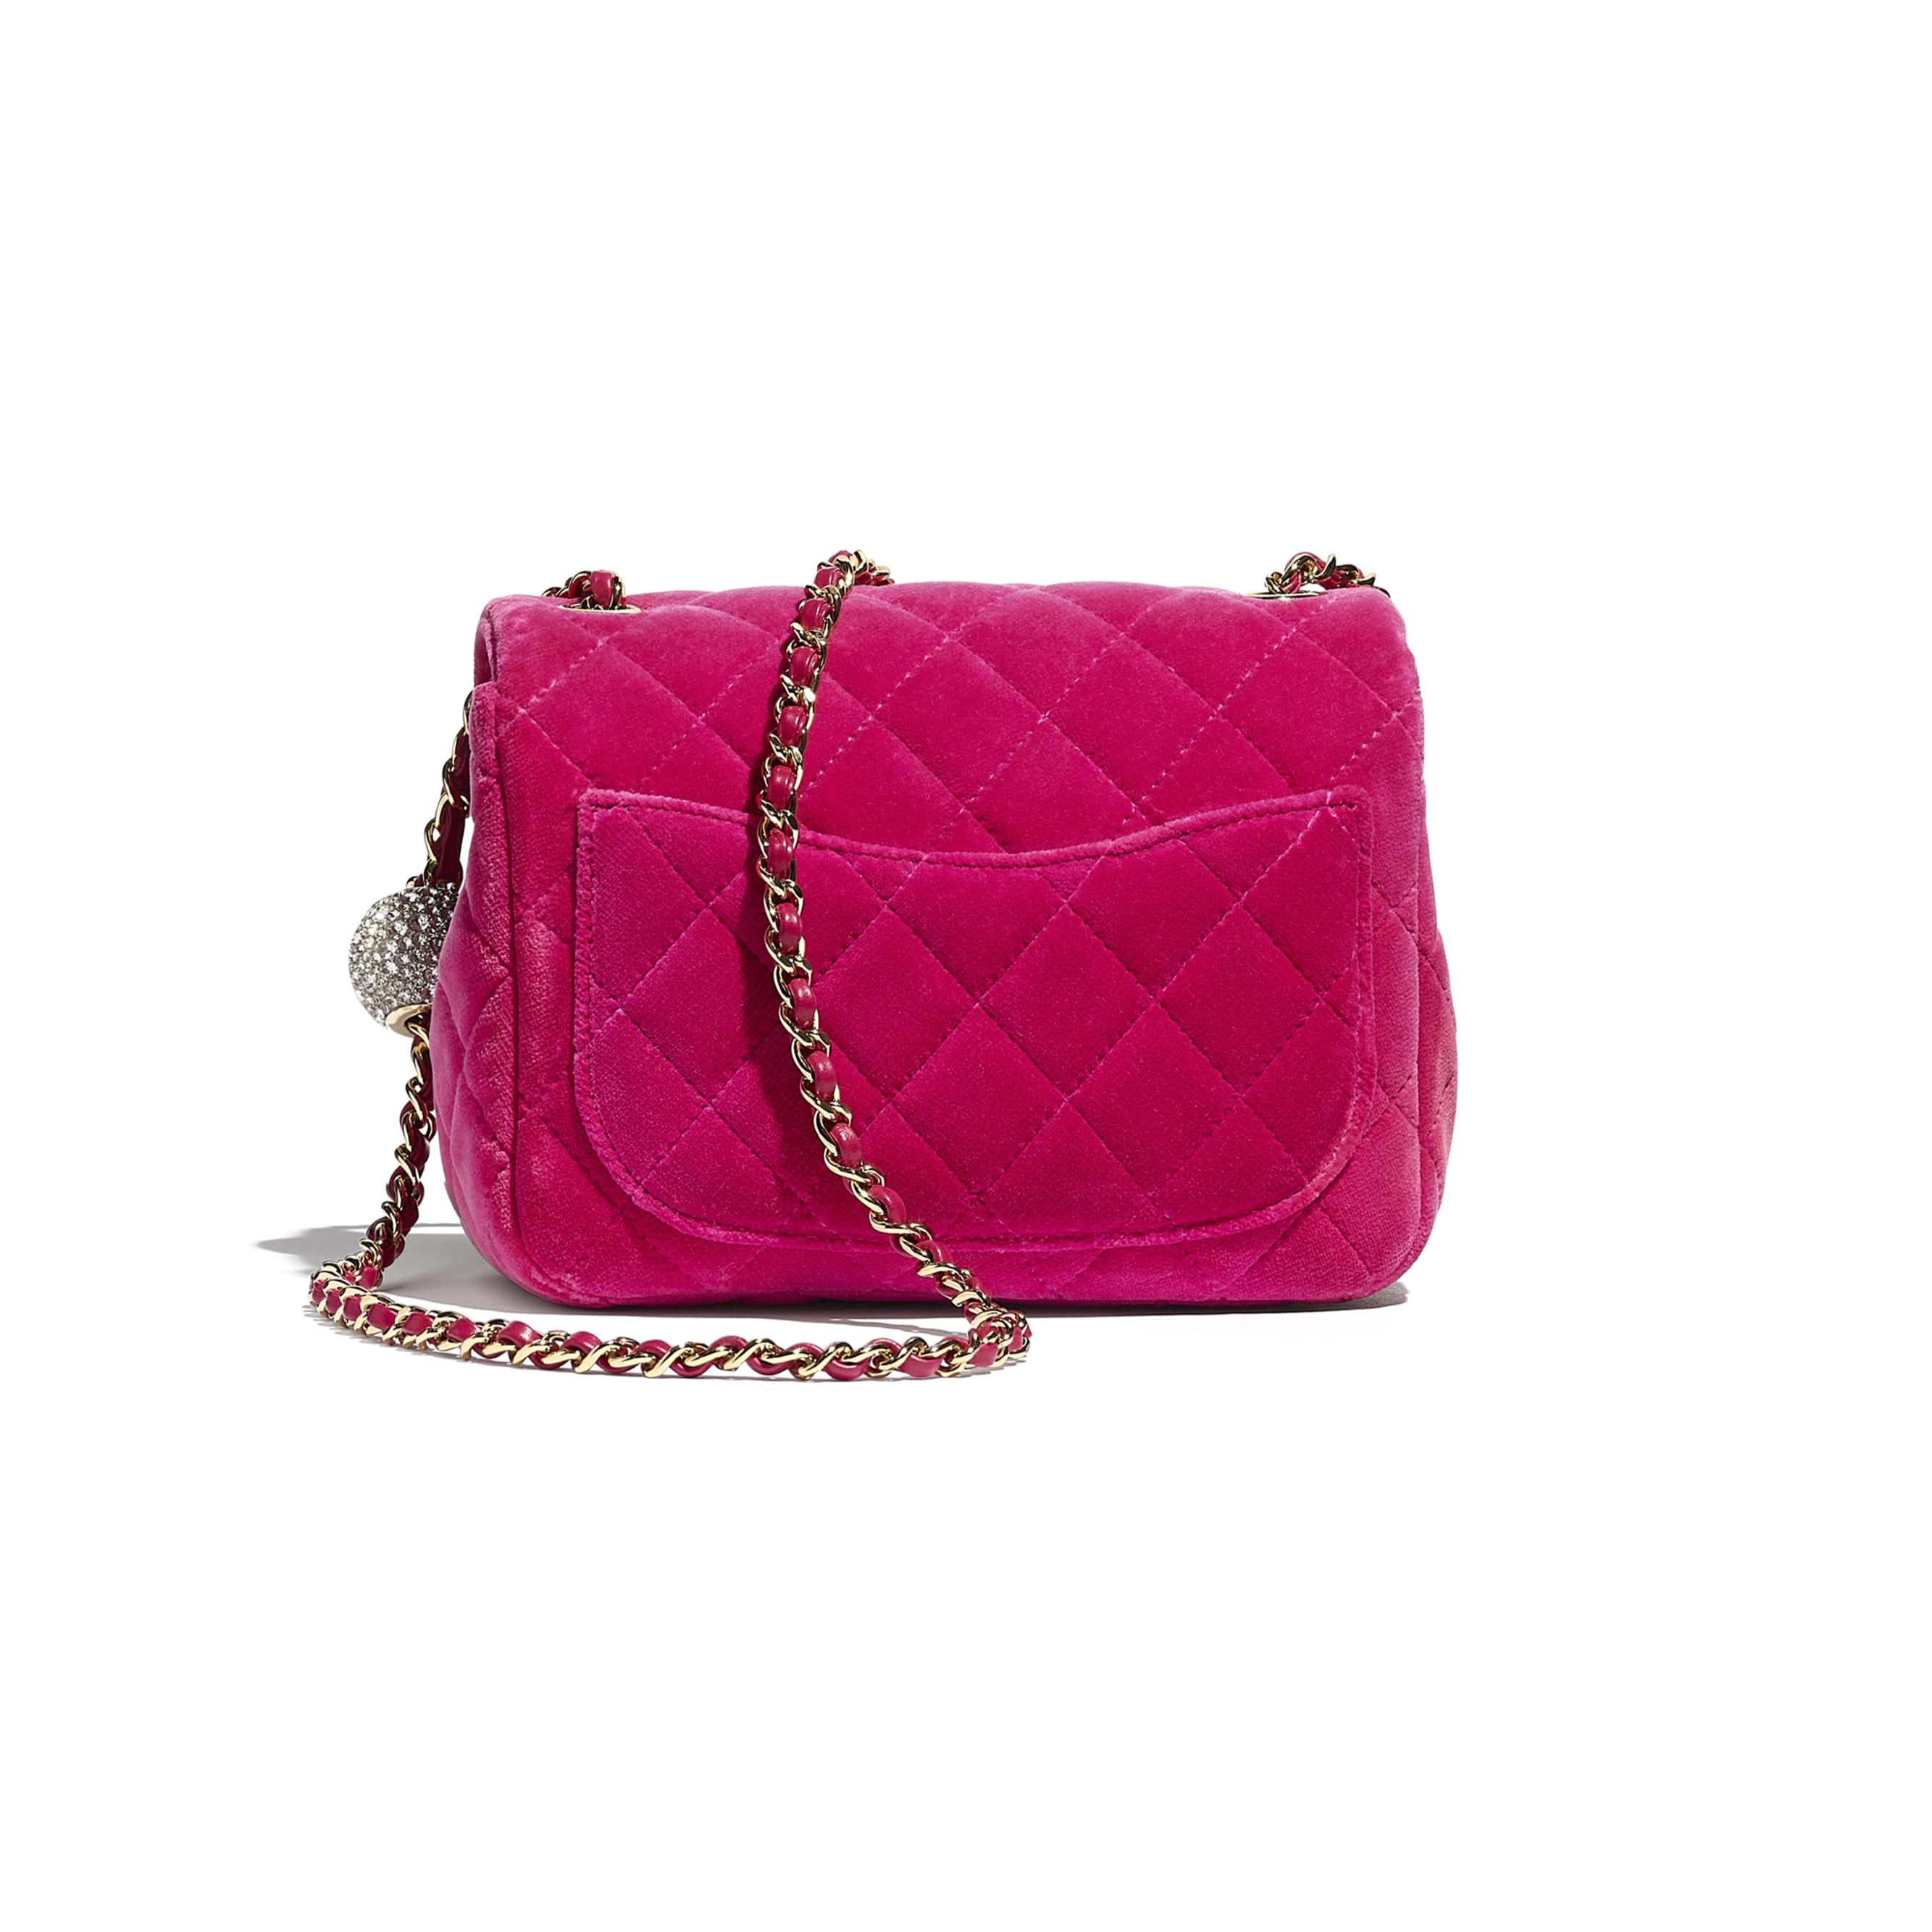 Flap Bag - Fuchsia - Velvet, Diamanté & Silver-Tone Metal - CHANEL - Alternative view - see standard sized version